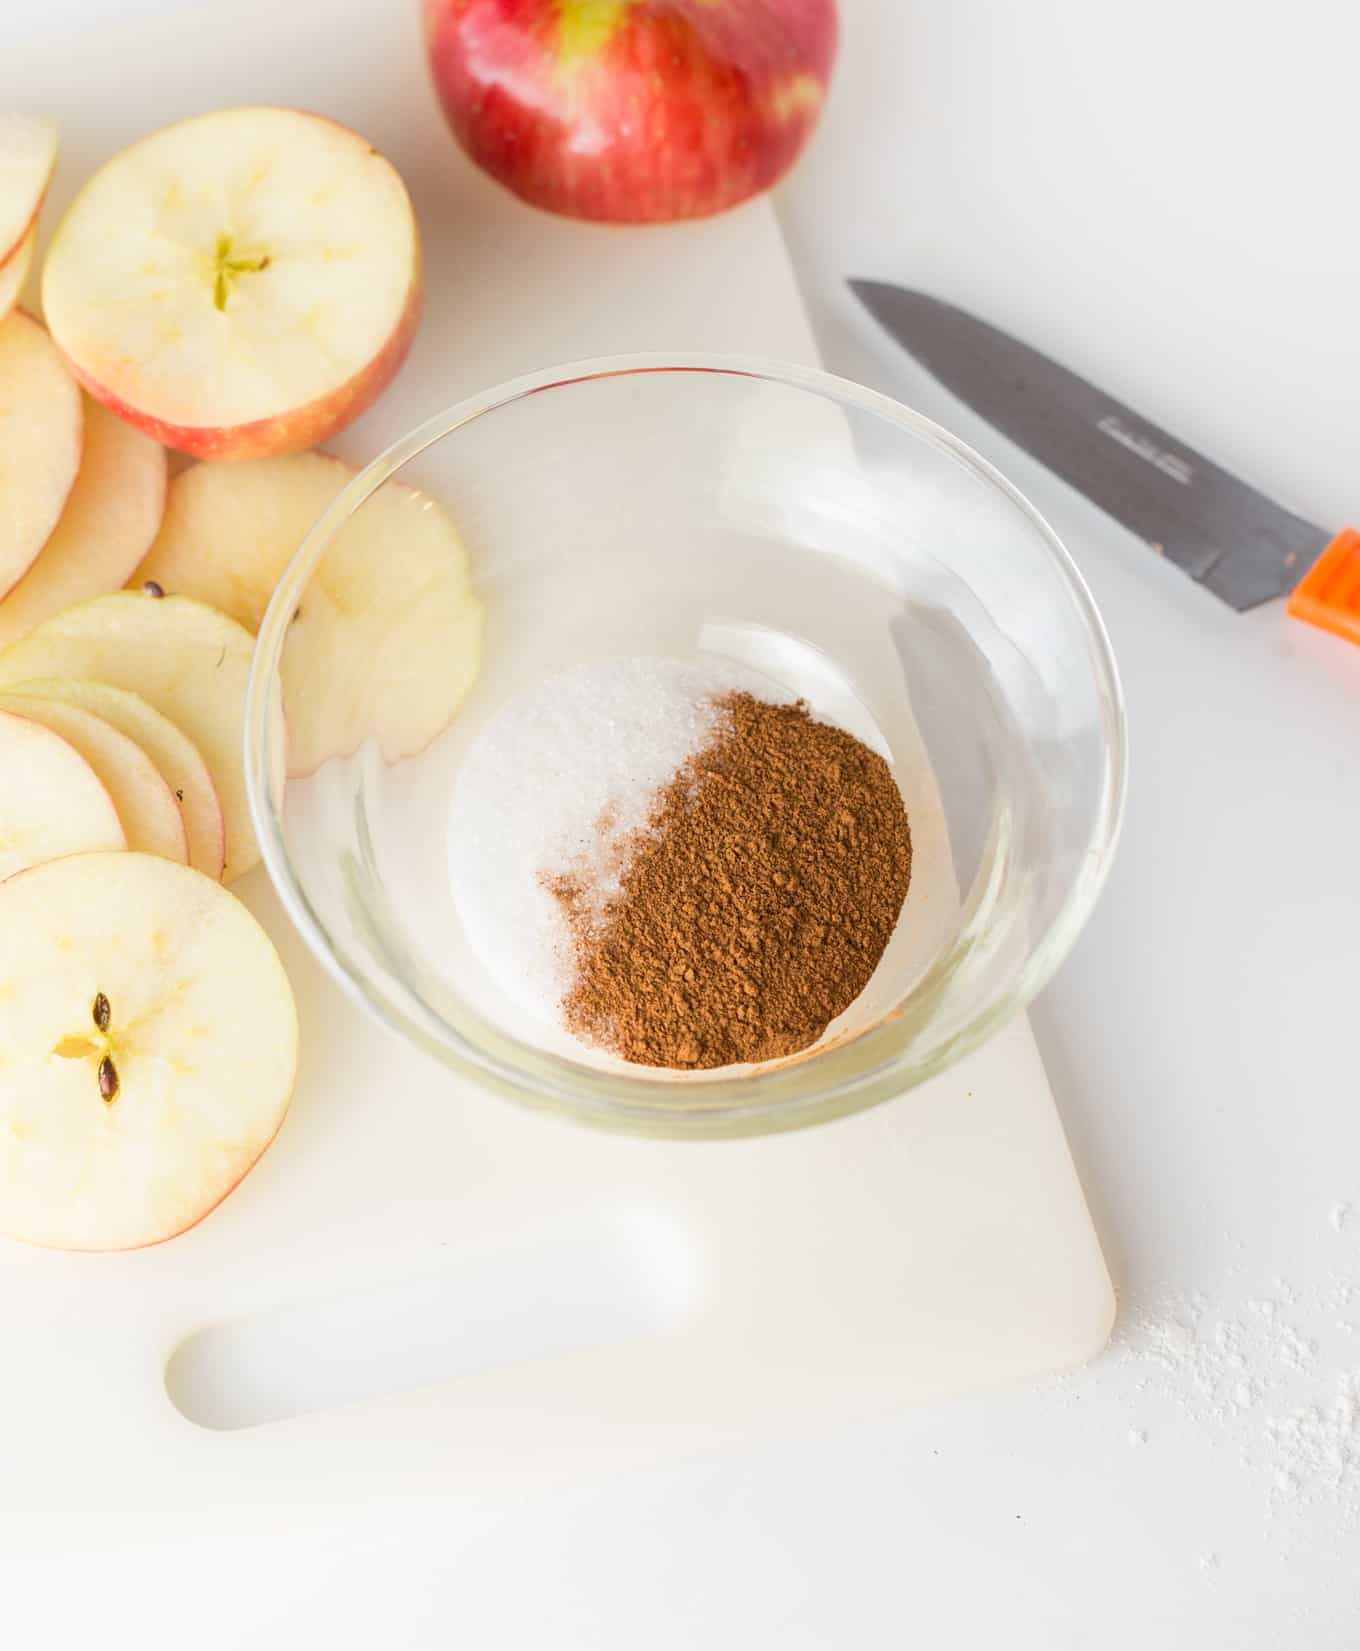 Glass bowl of cinnamon and sugar for apple chips with knife and apple slices.